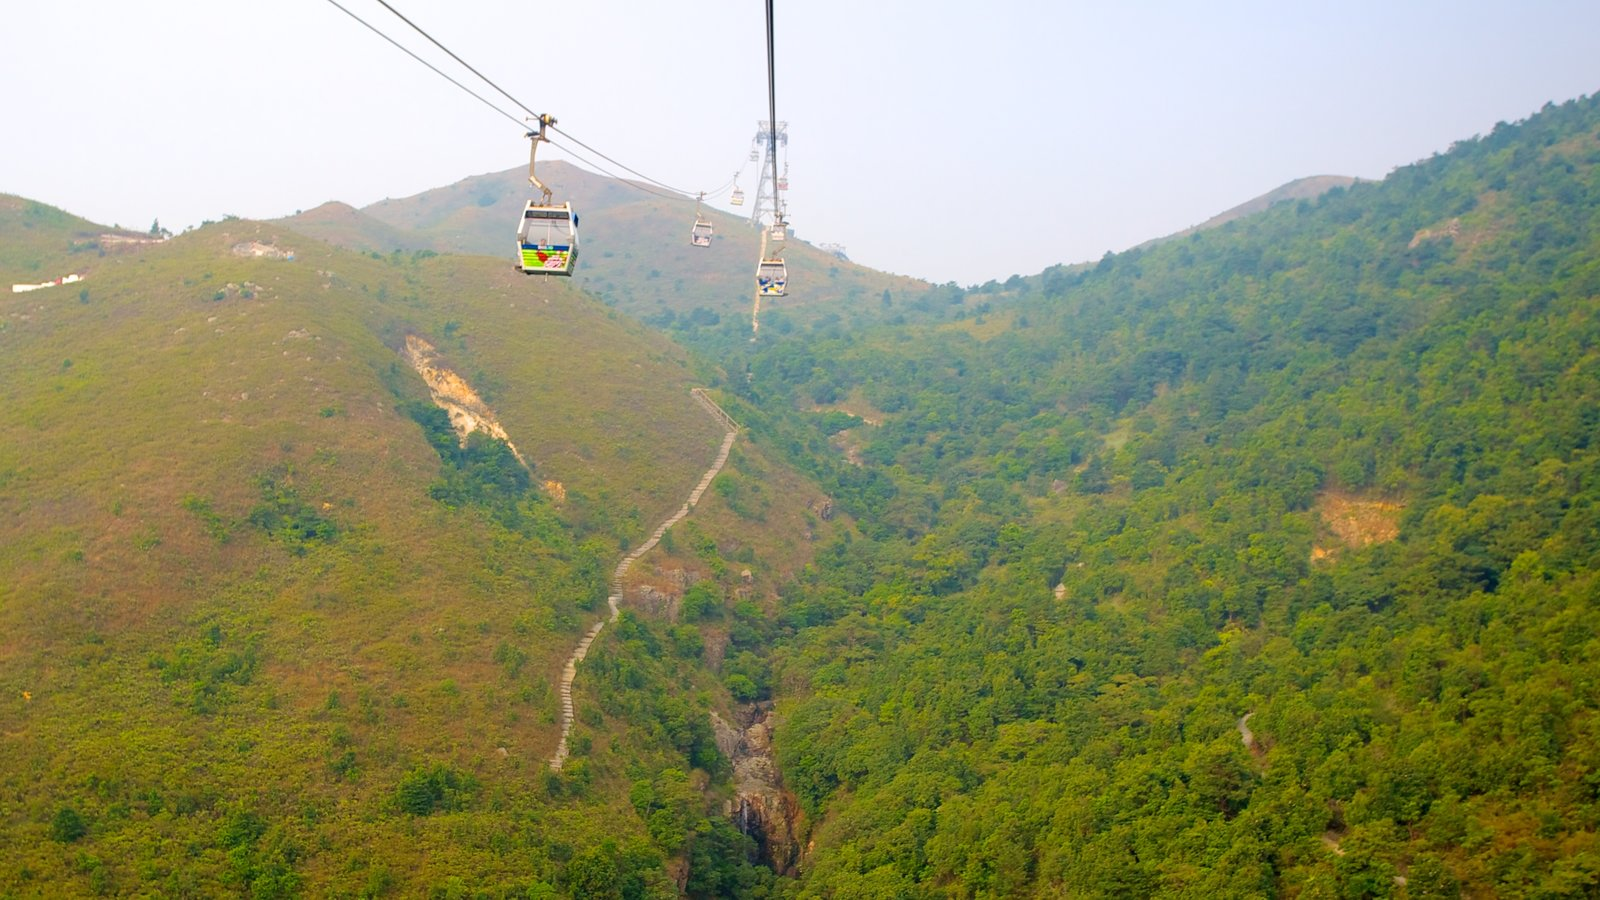 Ngong Ping 360 featuring forests, a gondola and mountains